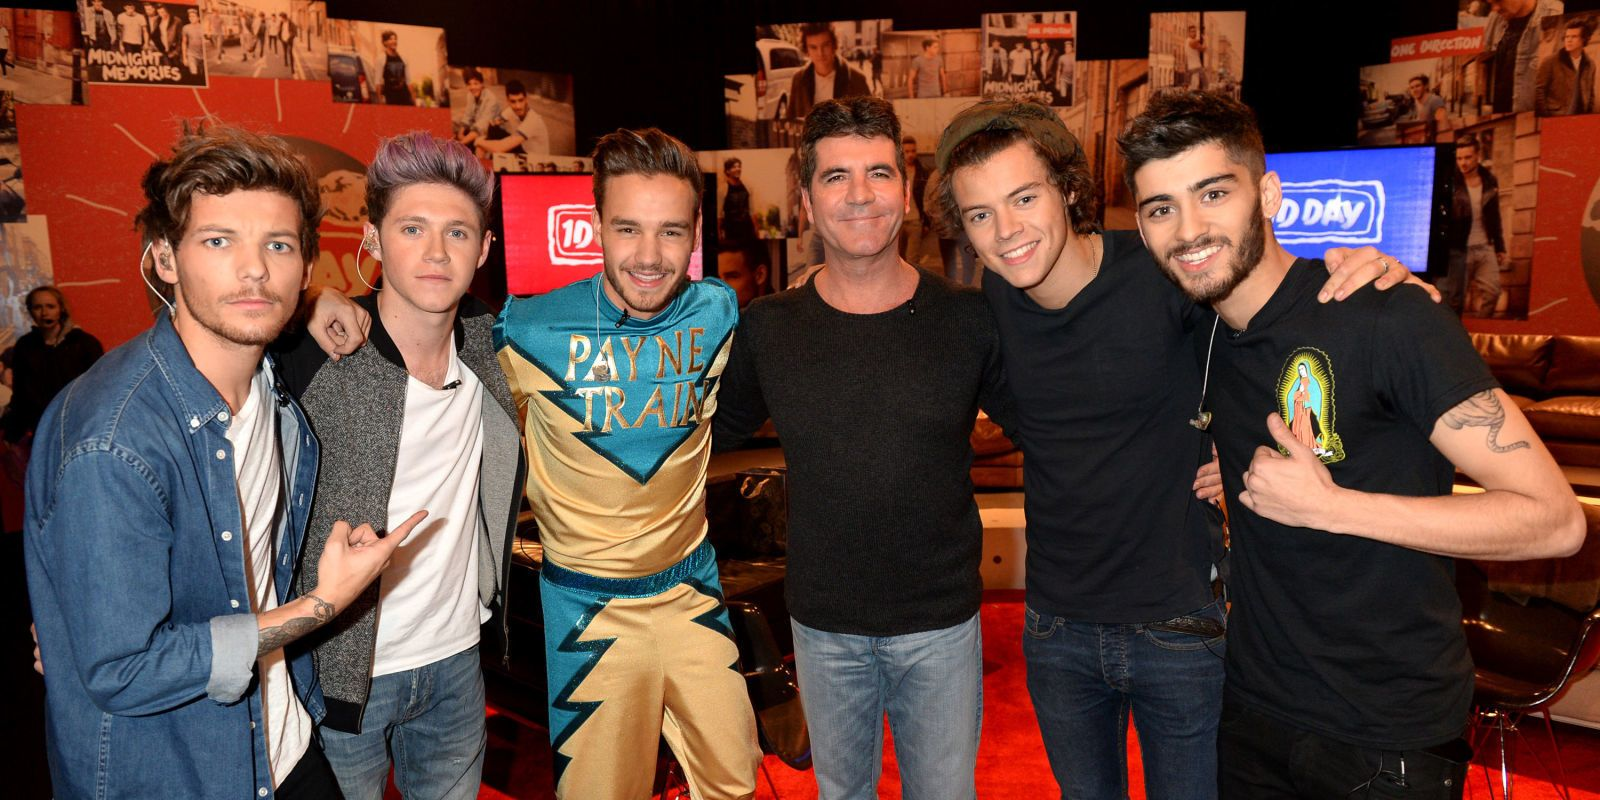 Simon Cowell Was Just as Sad About Zayn Leaving as Everyone Else